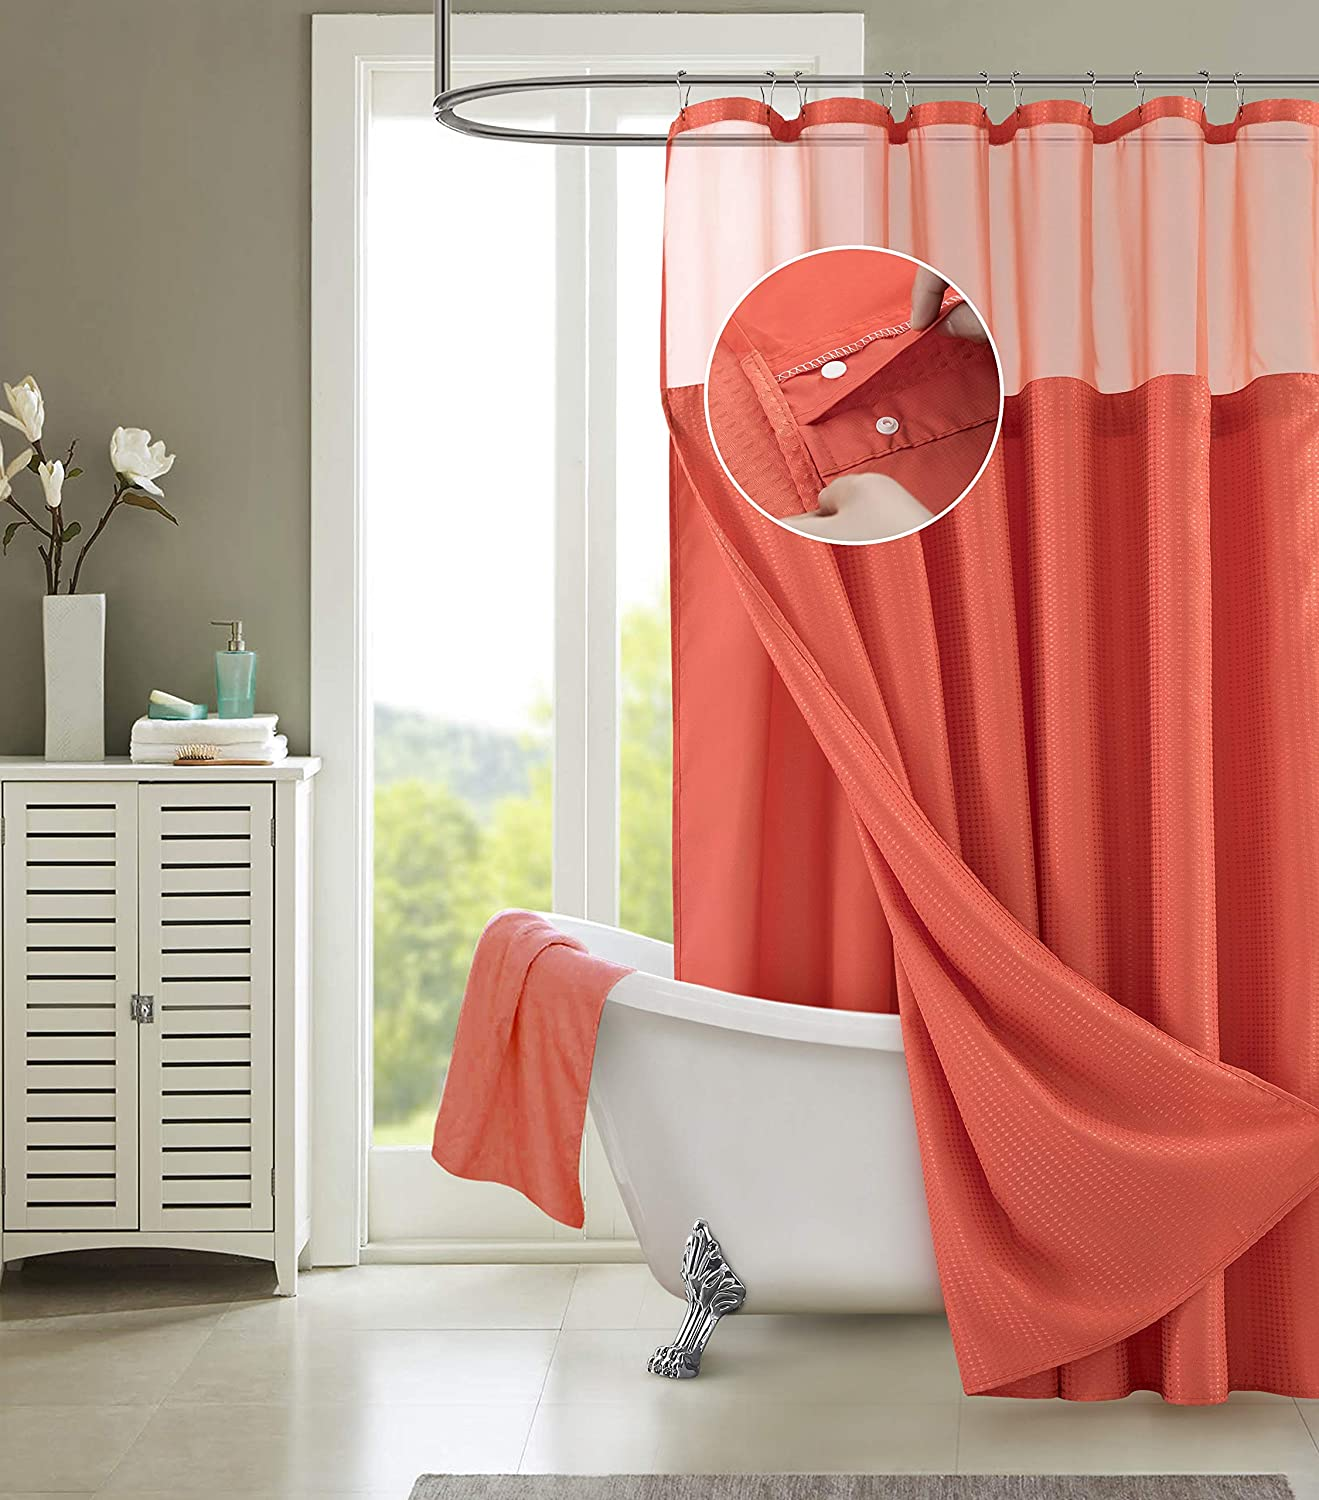 Dainty Home Waffle Complete Shower Curtain, Coral